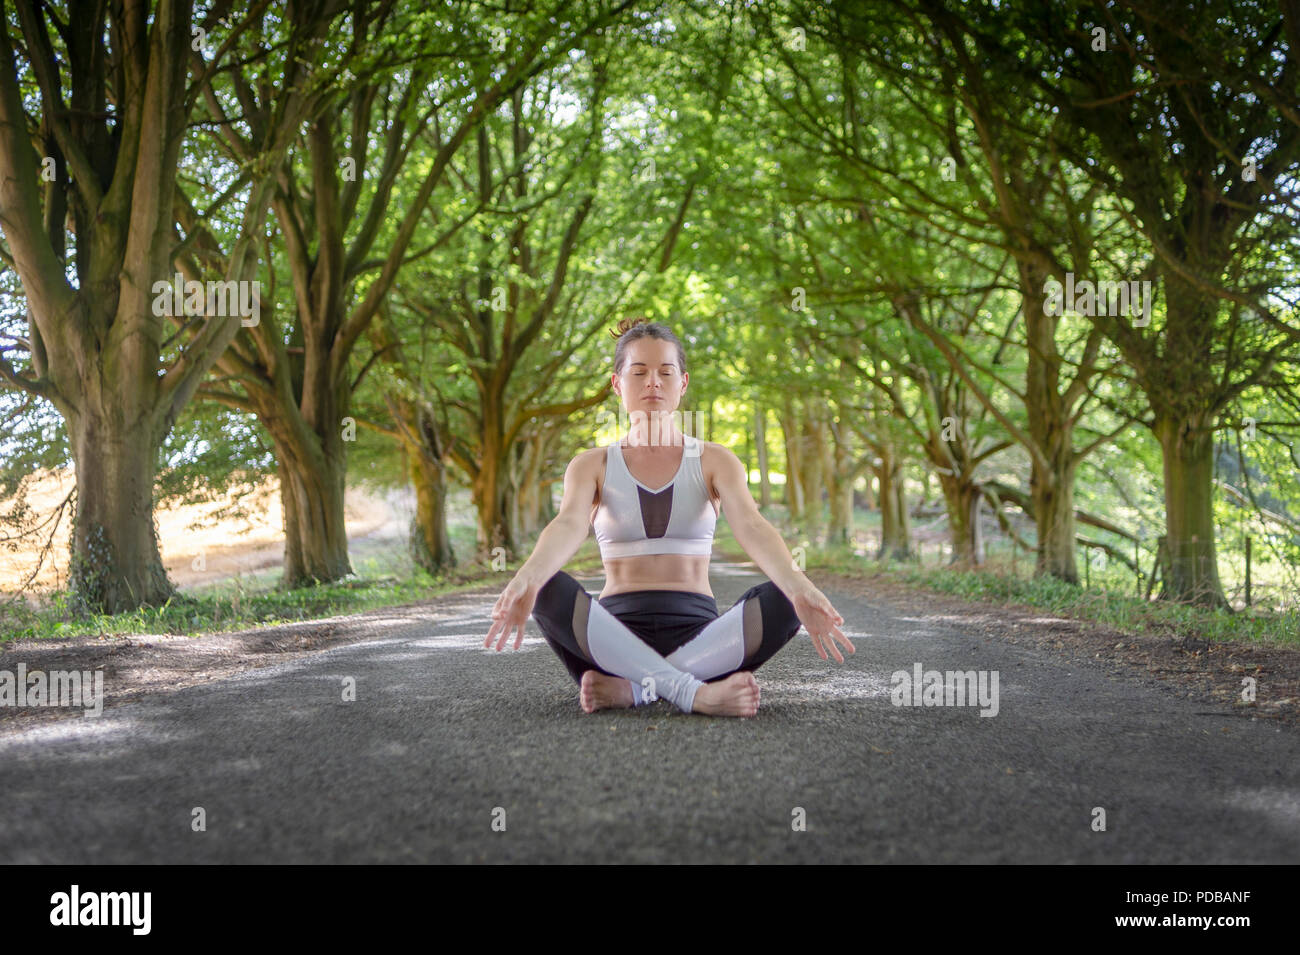 woman sitting meditating outside with trees, - Stock Image